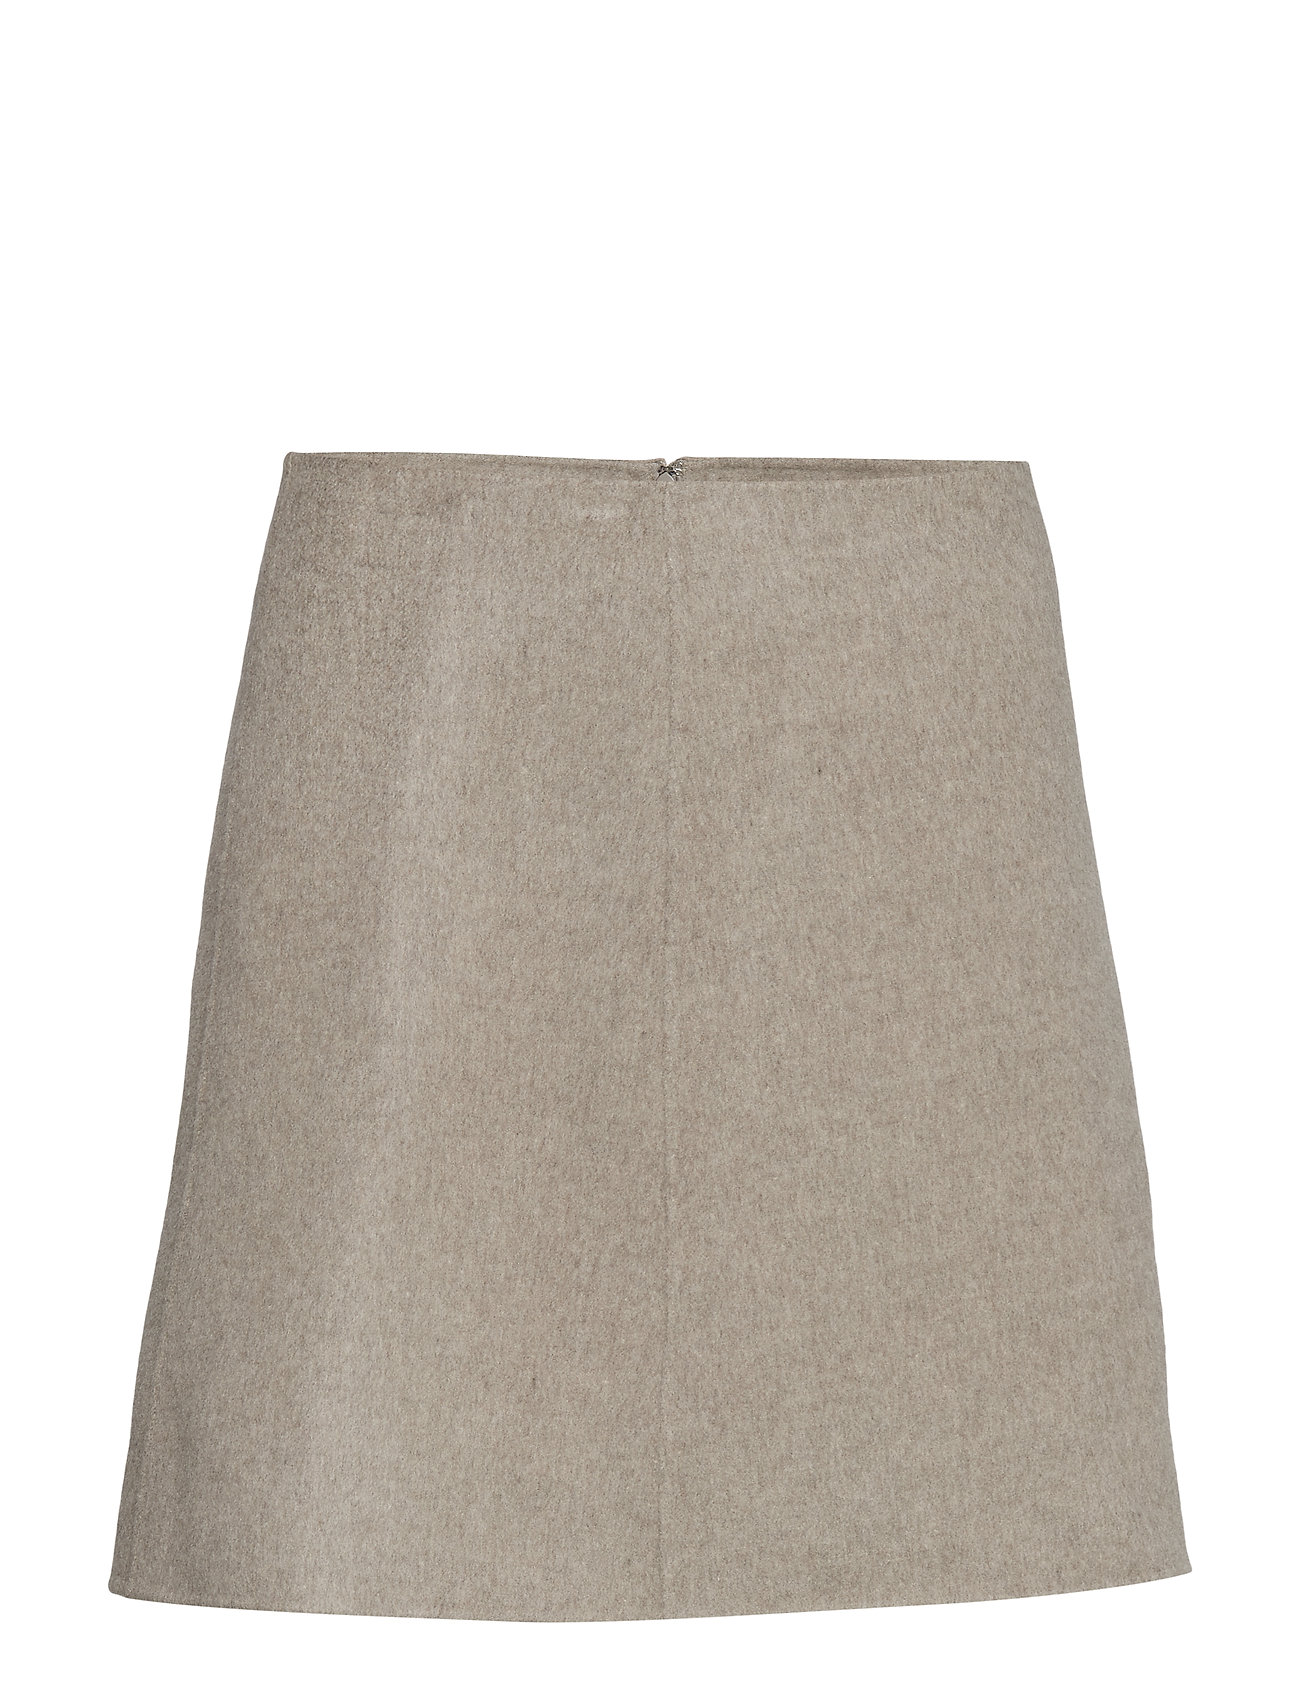 Theory PANELED DF SKIRT.NEW - YDB.TAUPE GREY